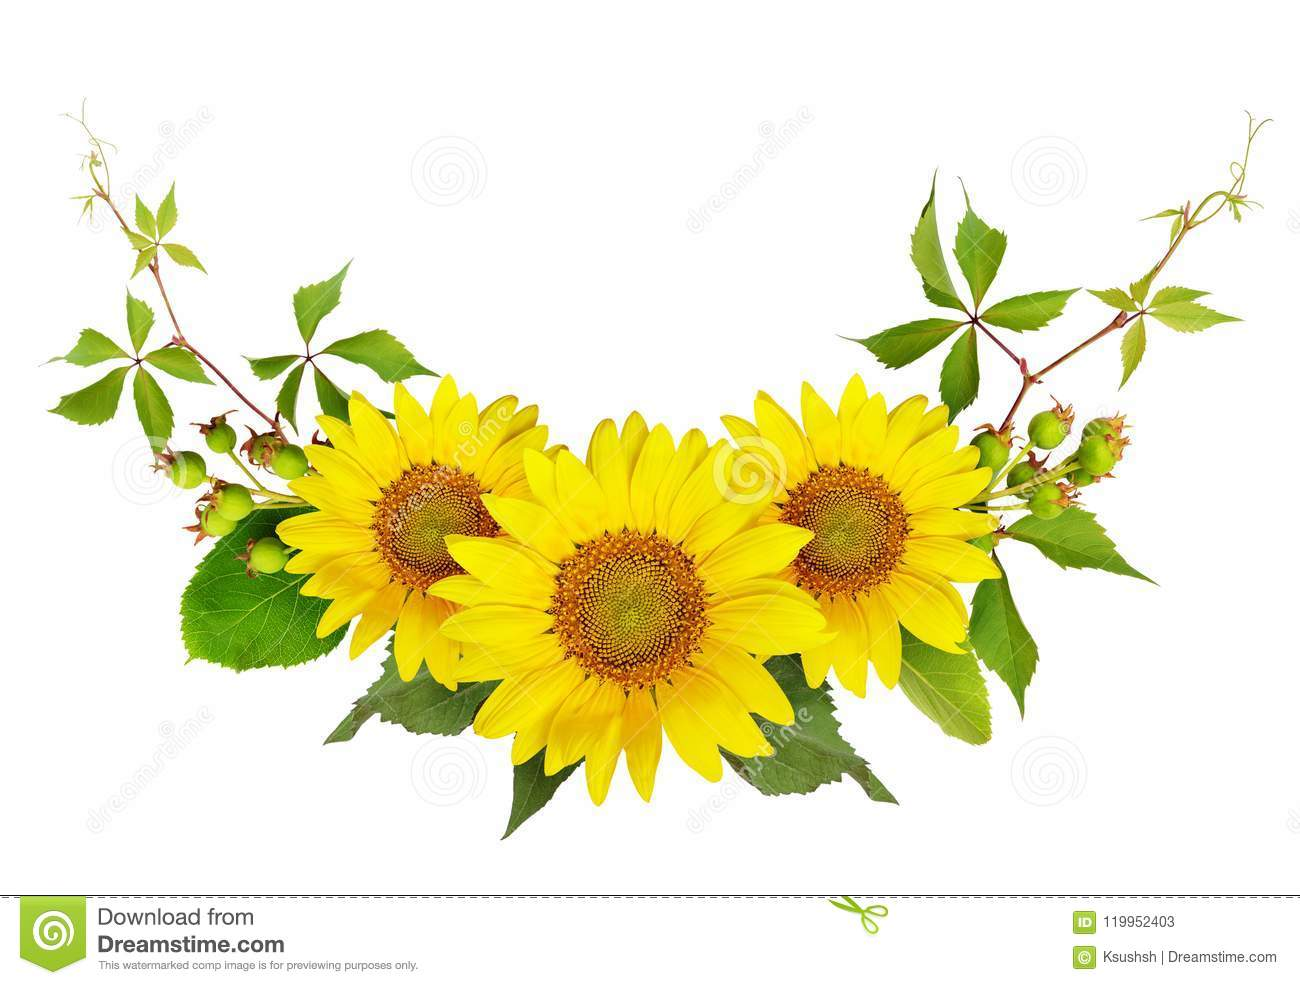 Sunflowers, green berries and leaves of wild grape in a summer a